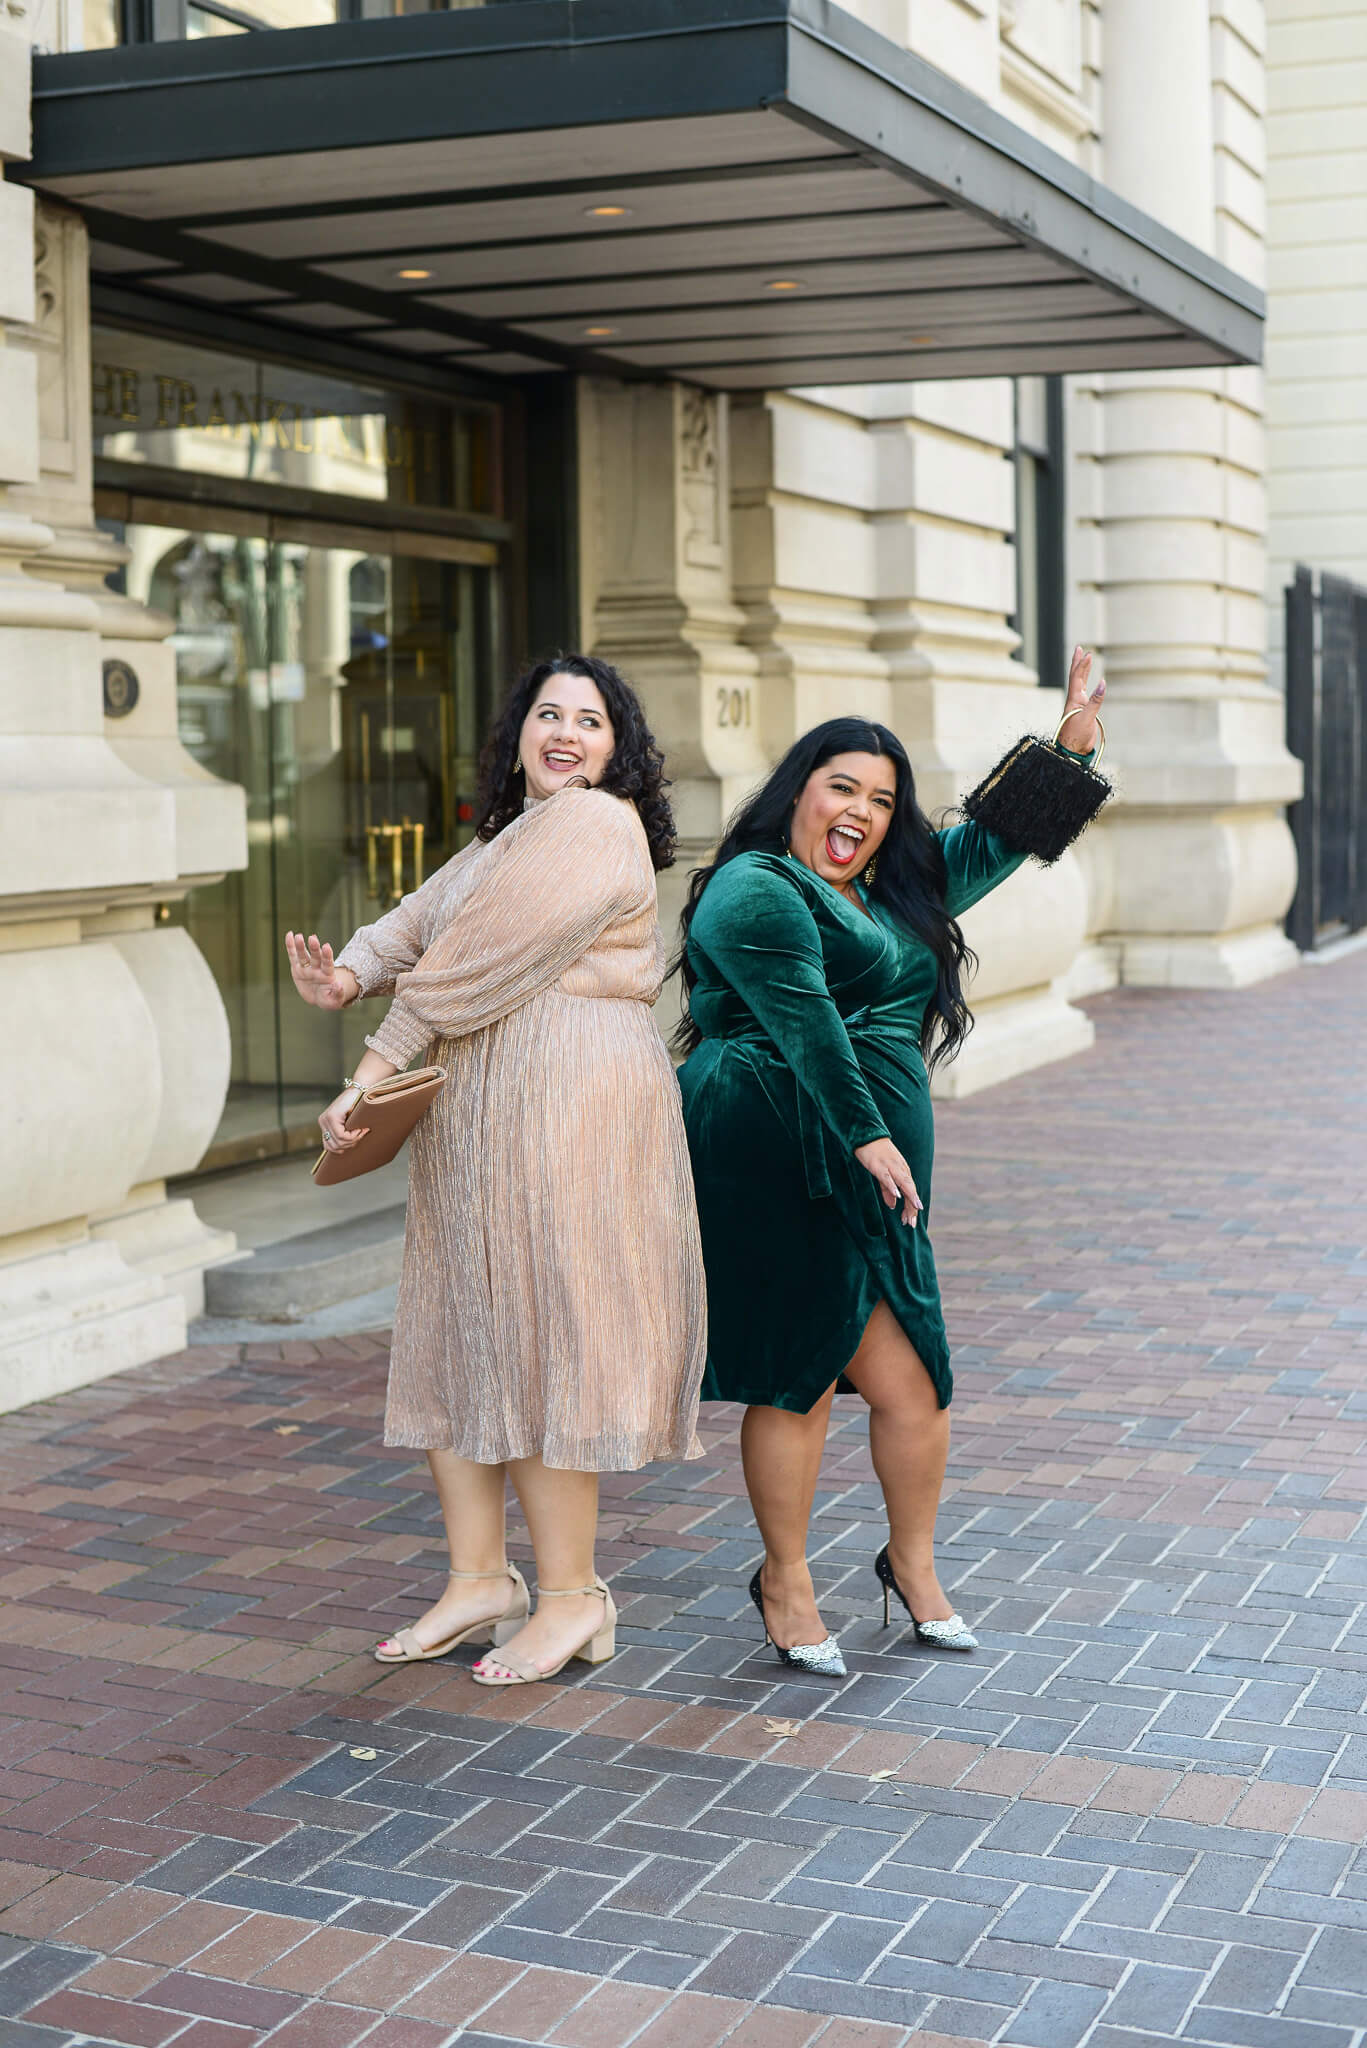 Bring on the champagne (plus size dress) for New Year's Eve